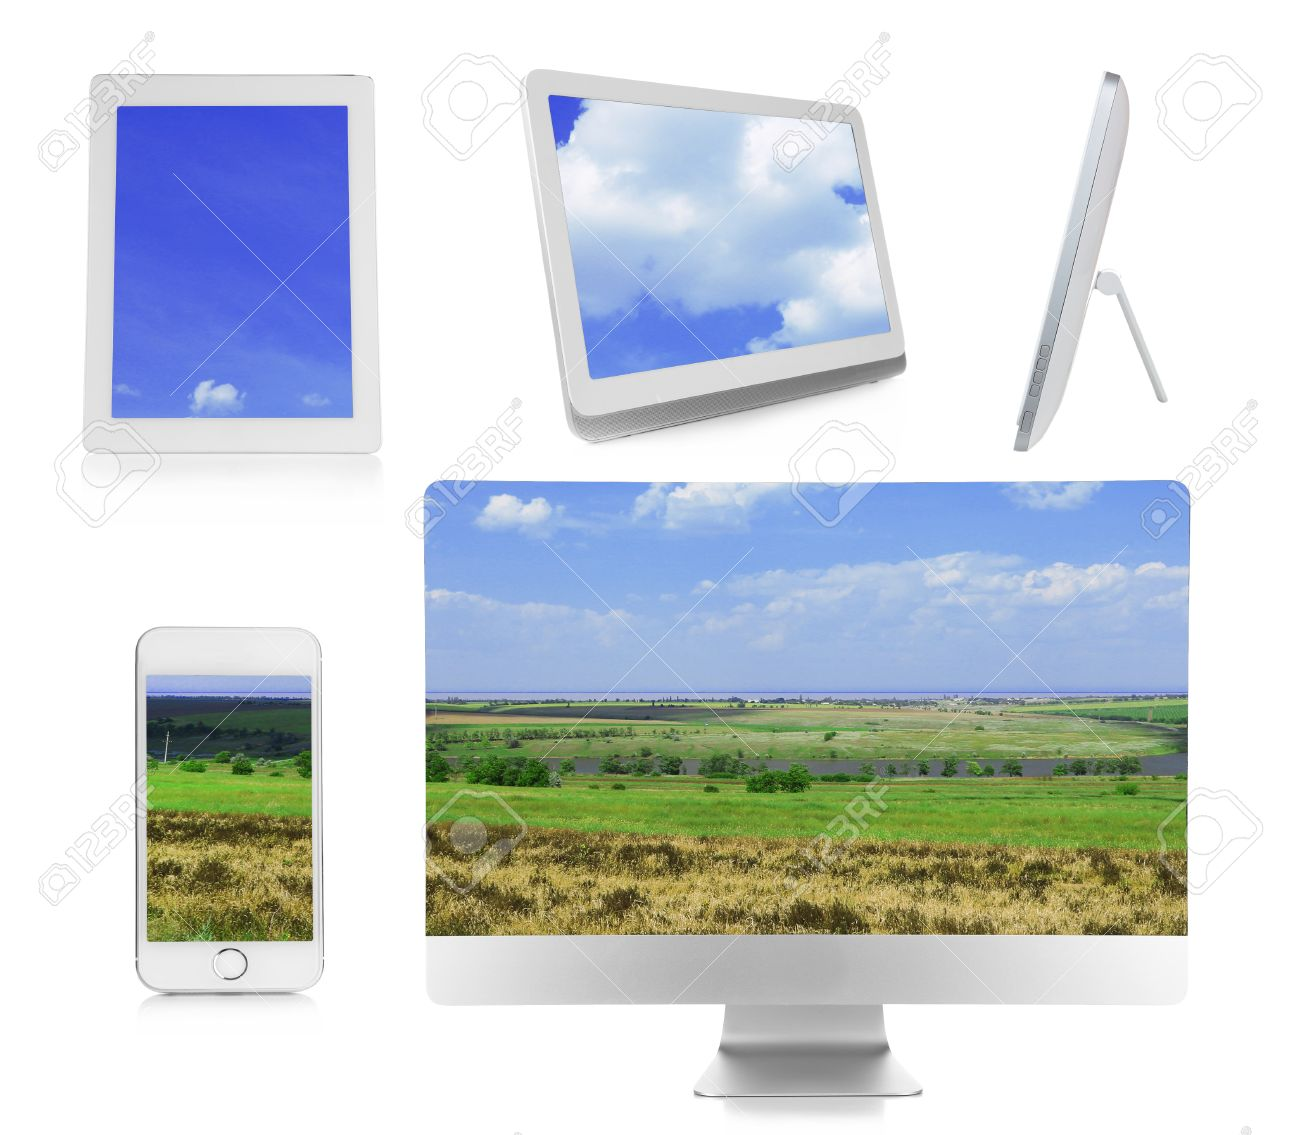 Monitor, laptop, tablets and phone with nature wallpaper on screens in collage isolated on